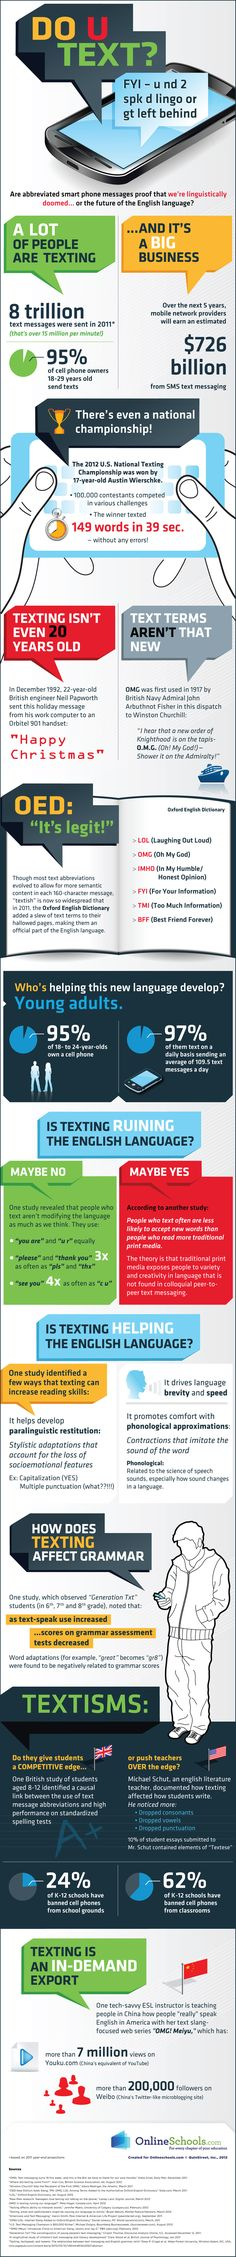 Is Text Messaging Ruining the English Language?